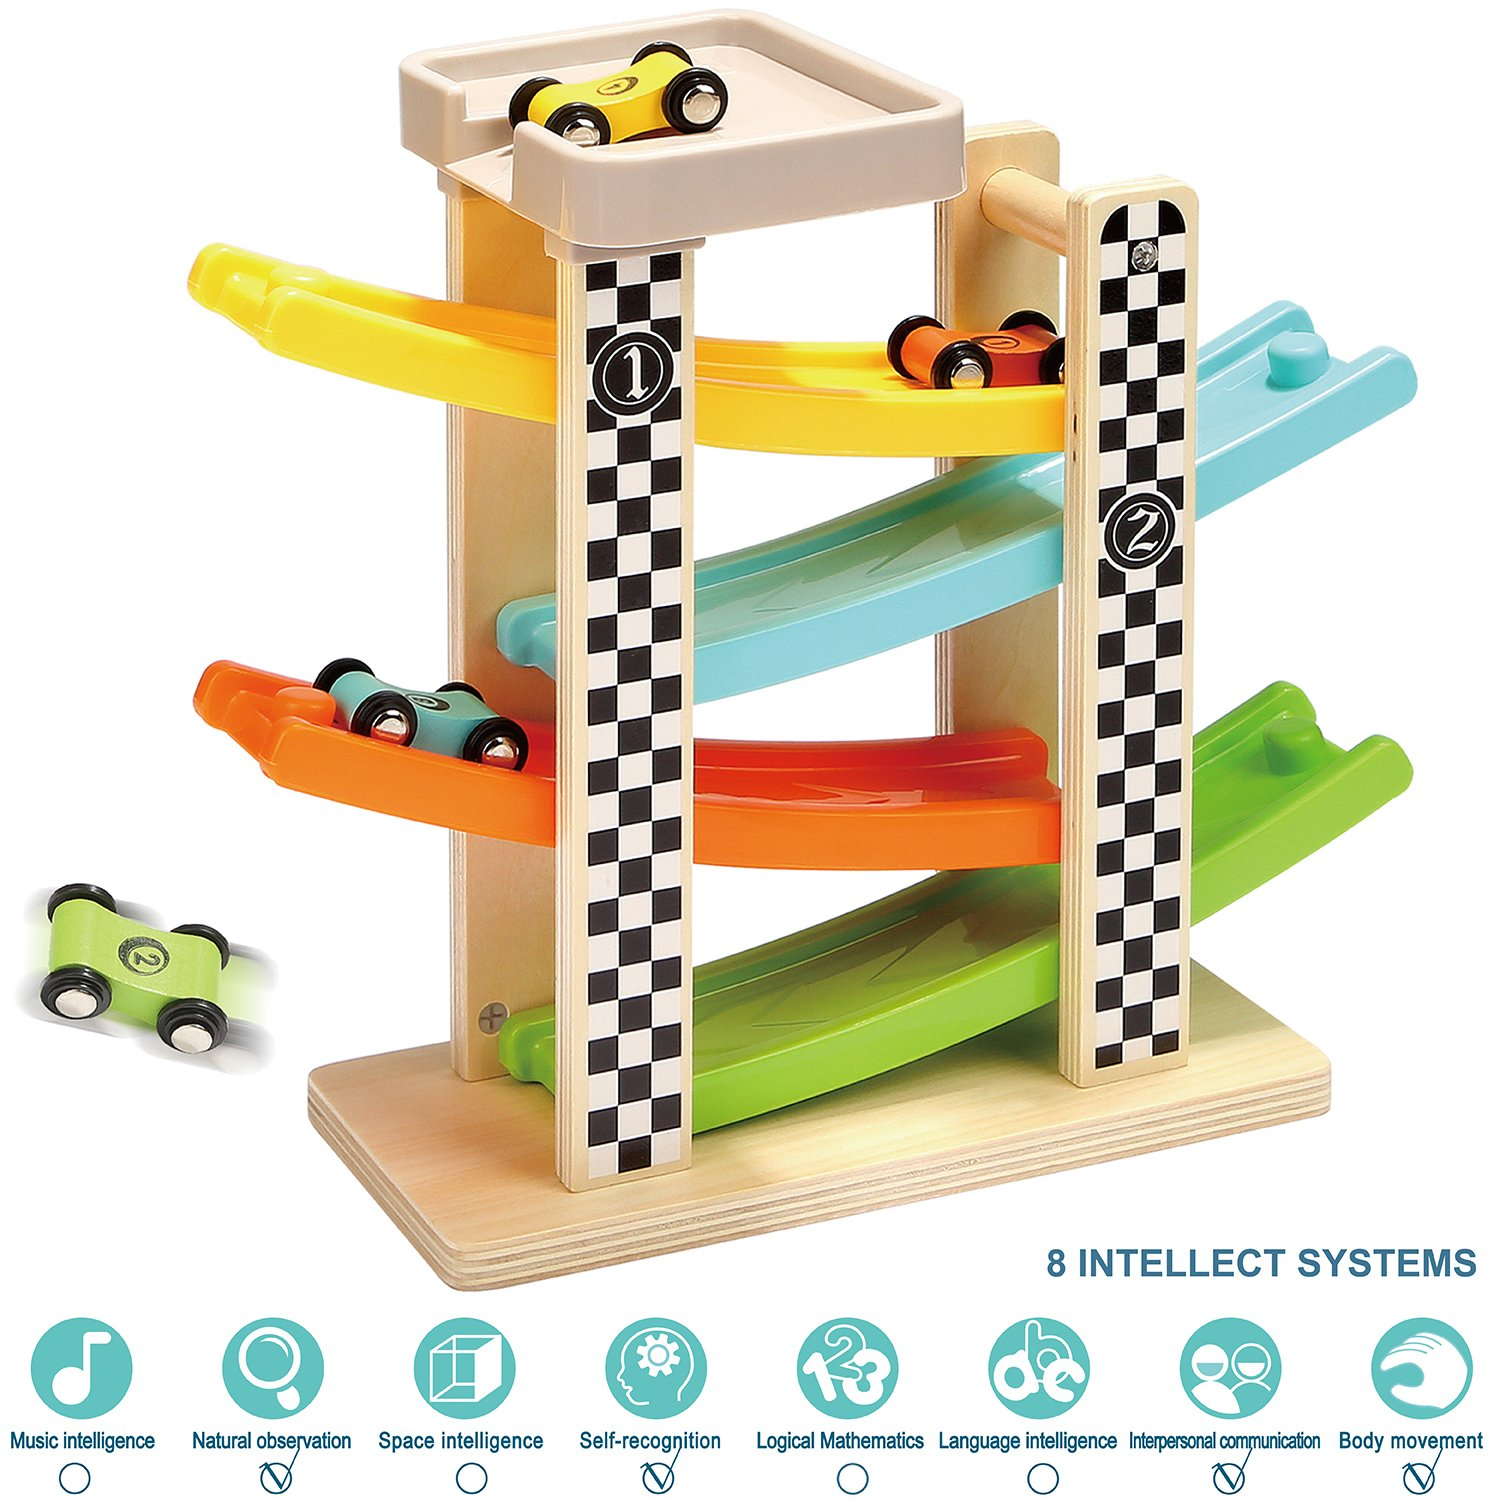 Wooden Figure Hand Grab Blocks Educational Toys for Girls Boys 1 2 3 4 5 Year